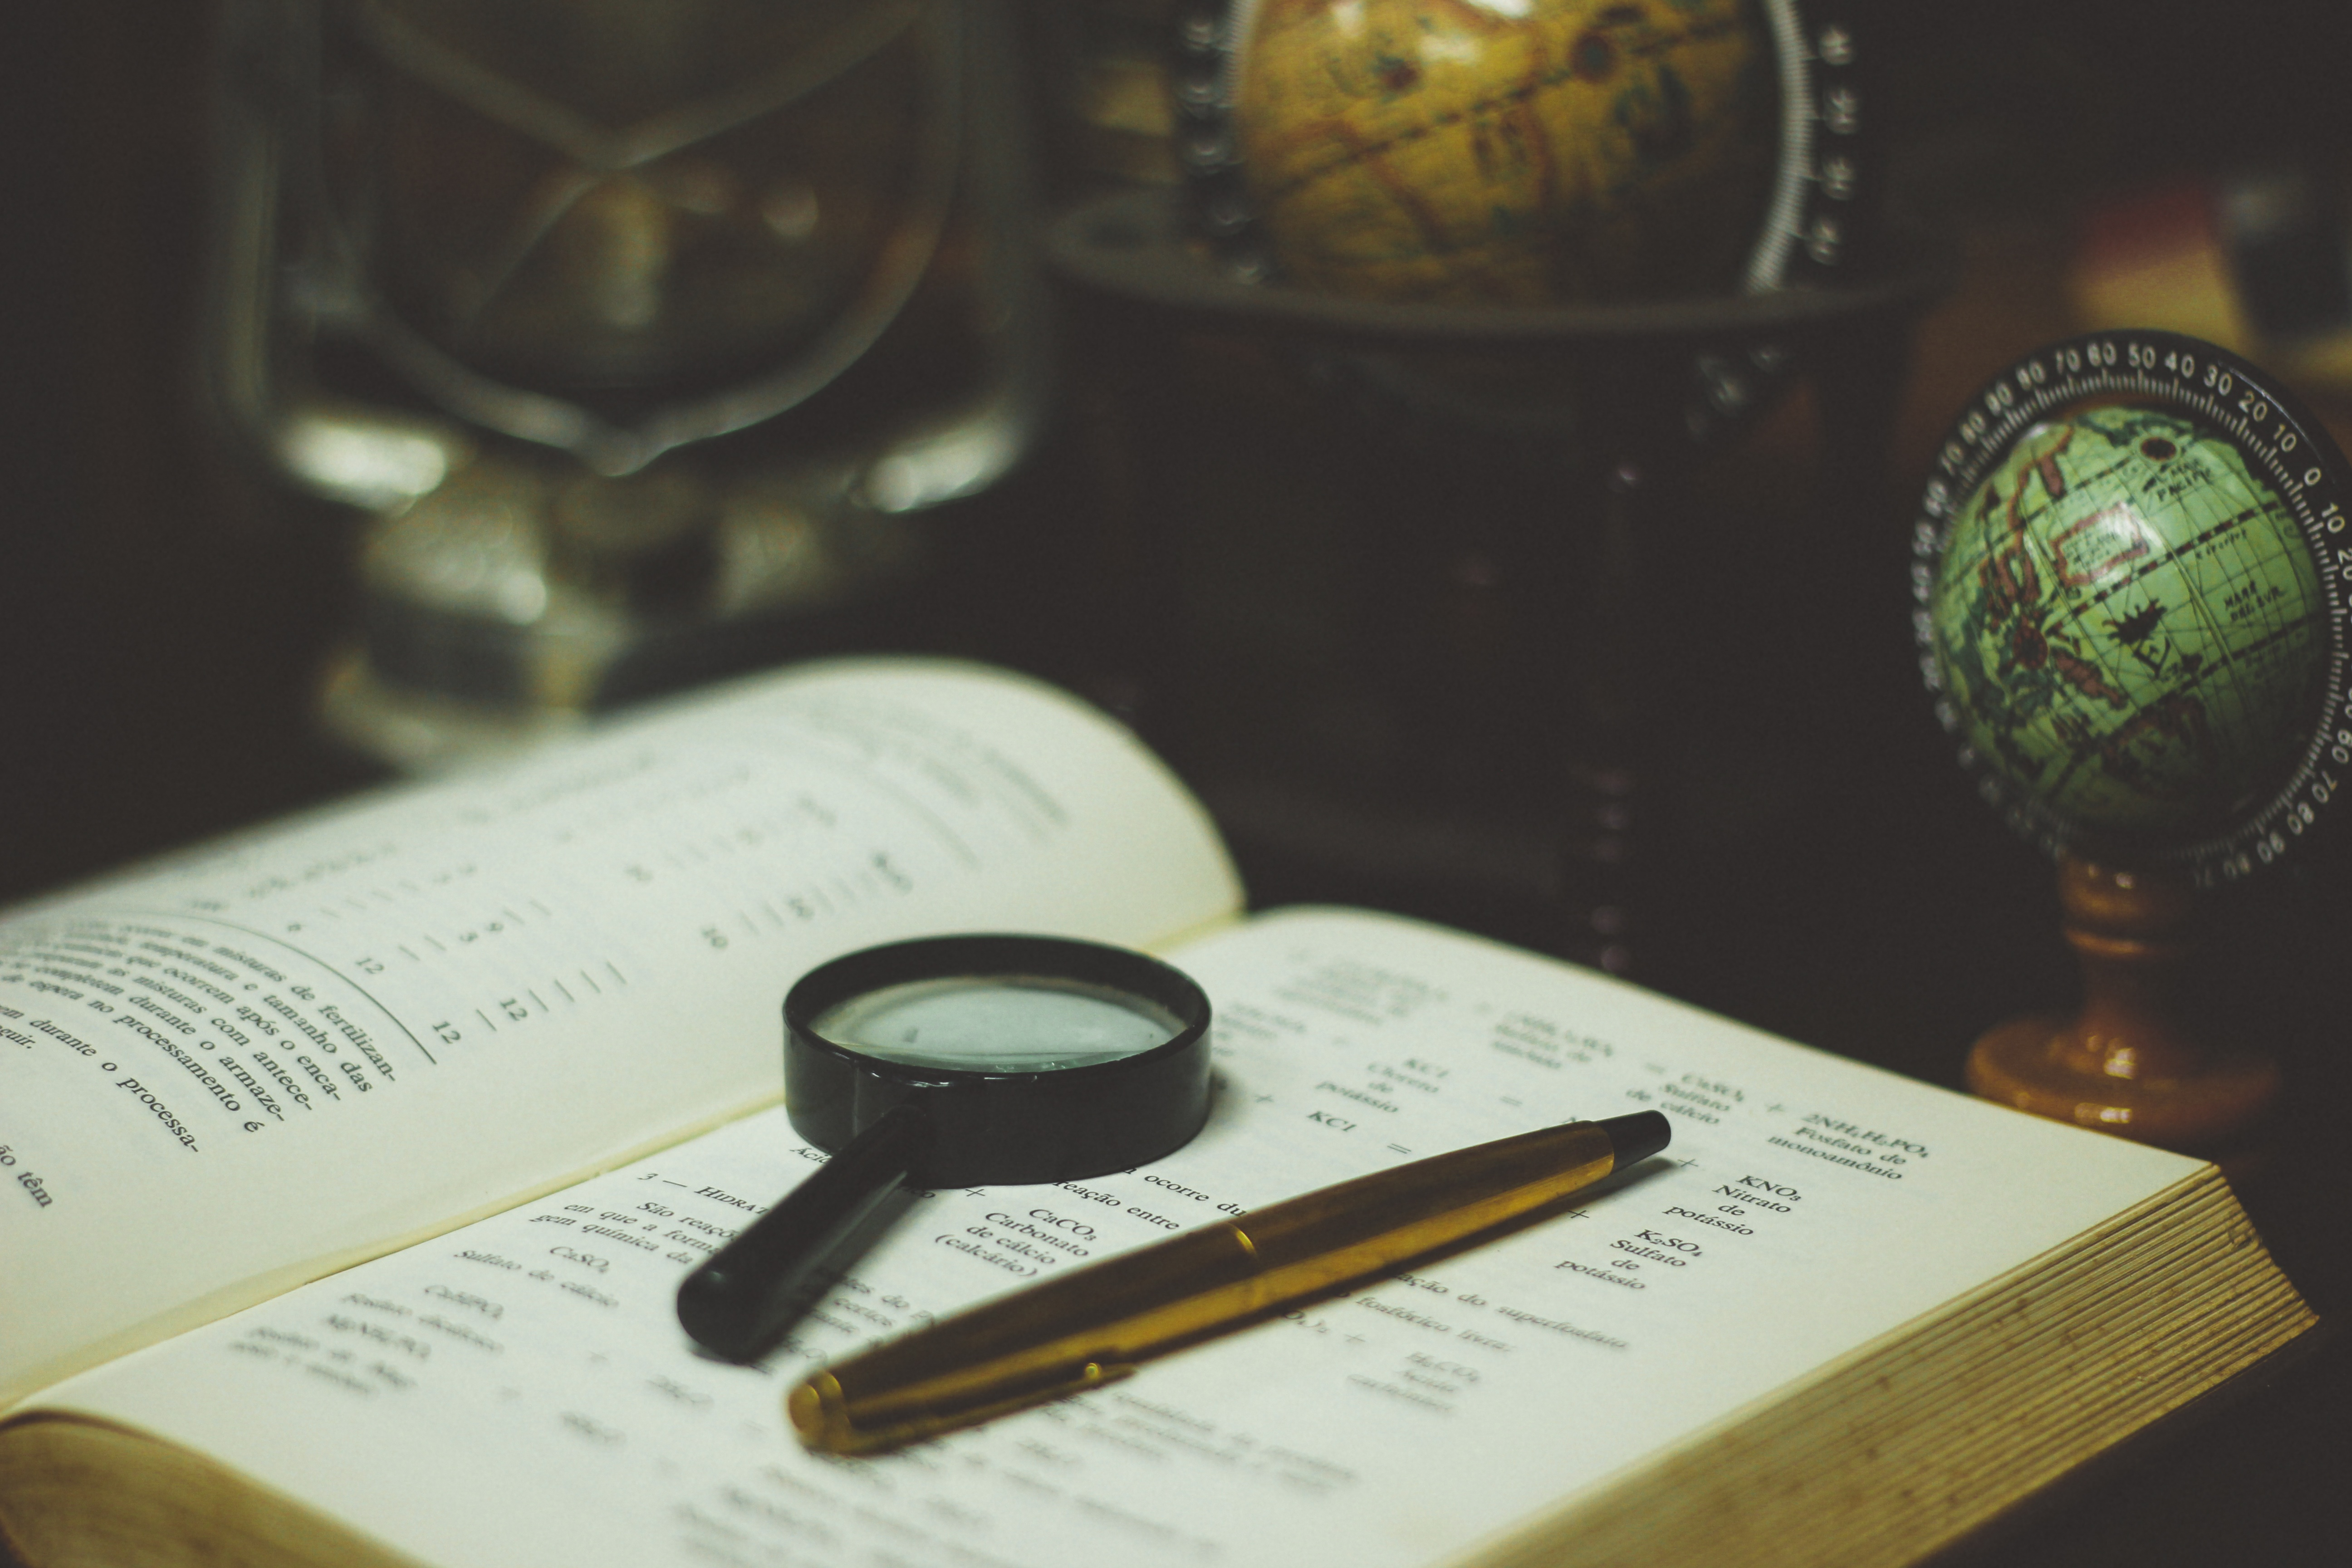 Book, Glass, Globe, Magnifying, Map, HQ Photo